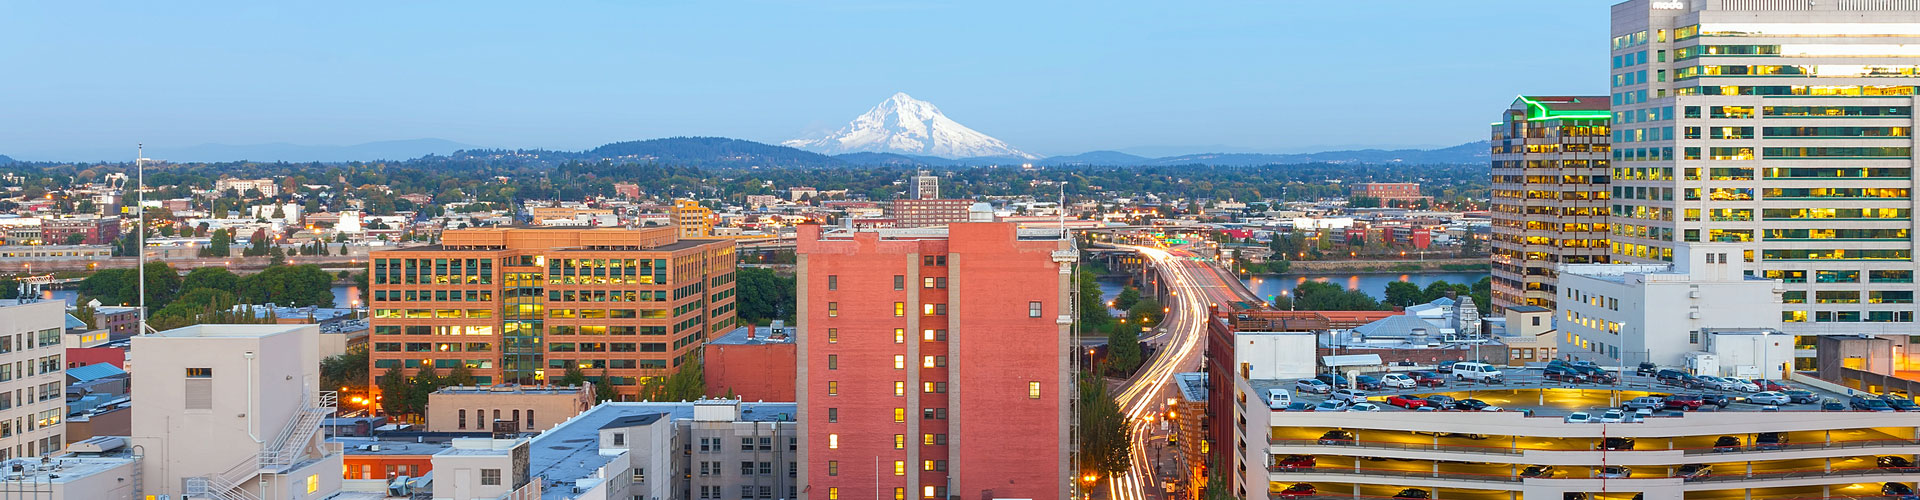 Portland Oregon downtown cityscape with Mt Hood view